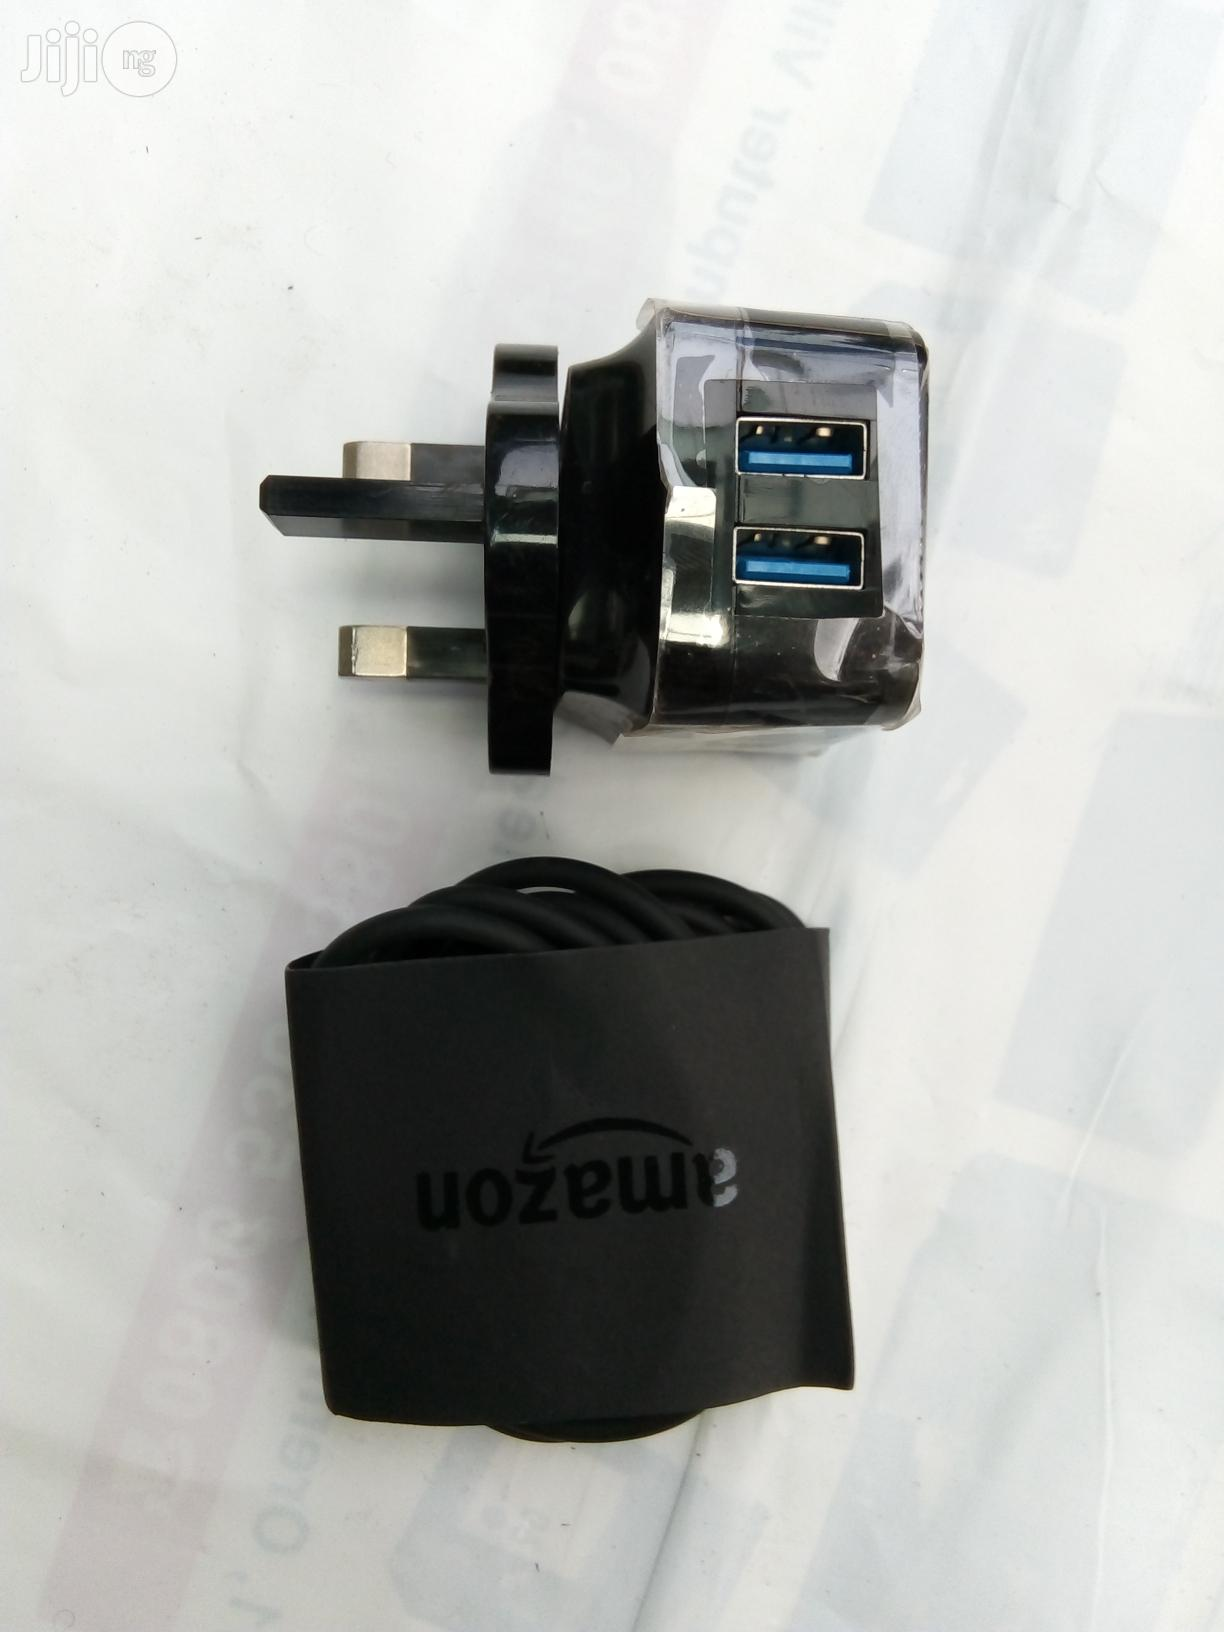 Double USB Charger 5v 2amp